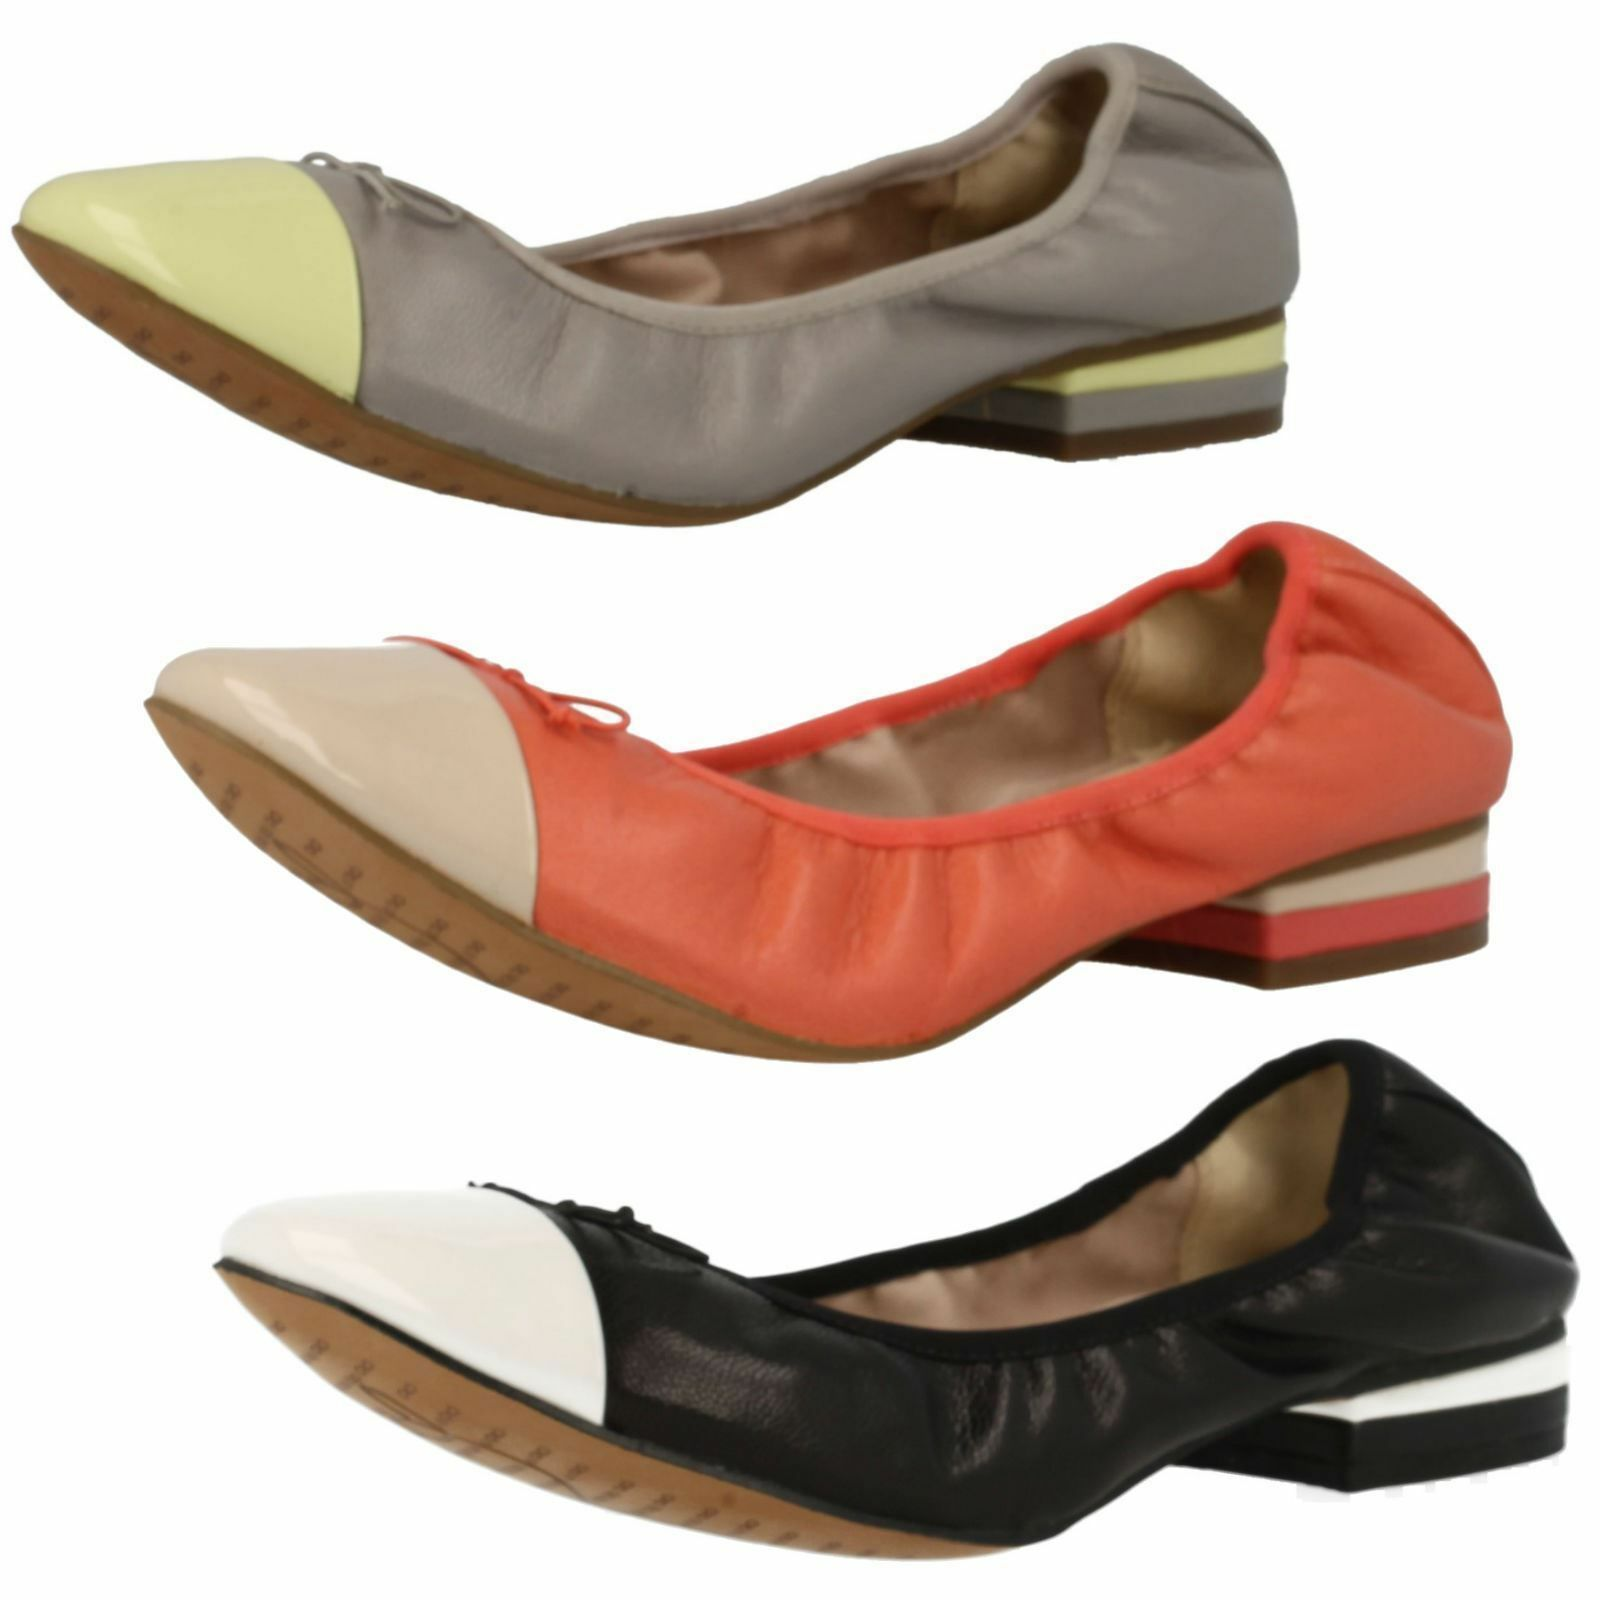 CLARKS flat Ditsy Dress slip on flat CLARKS summer casual shoes bec8b4